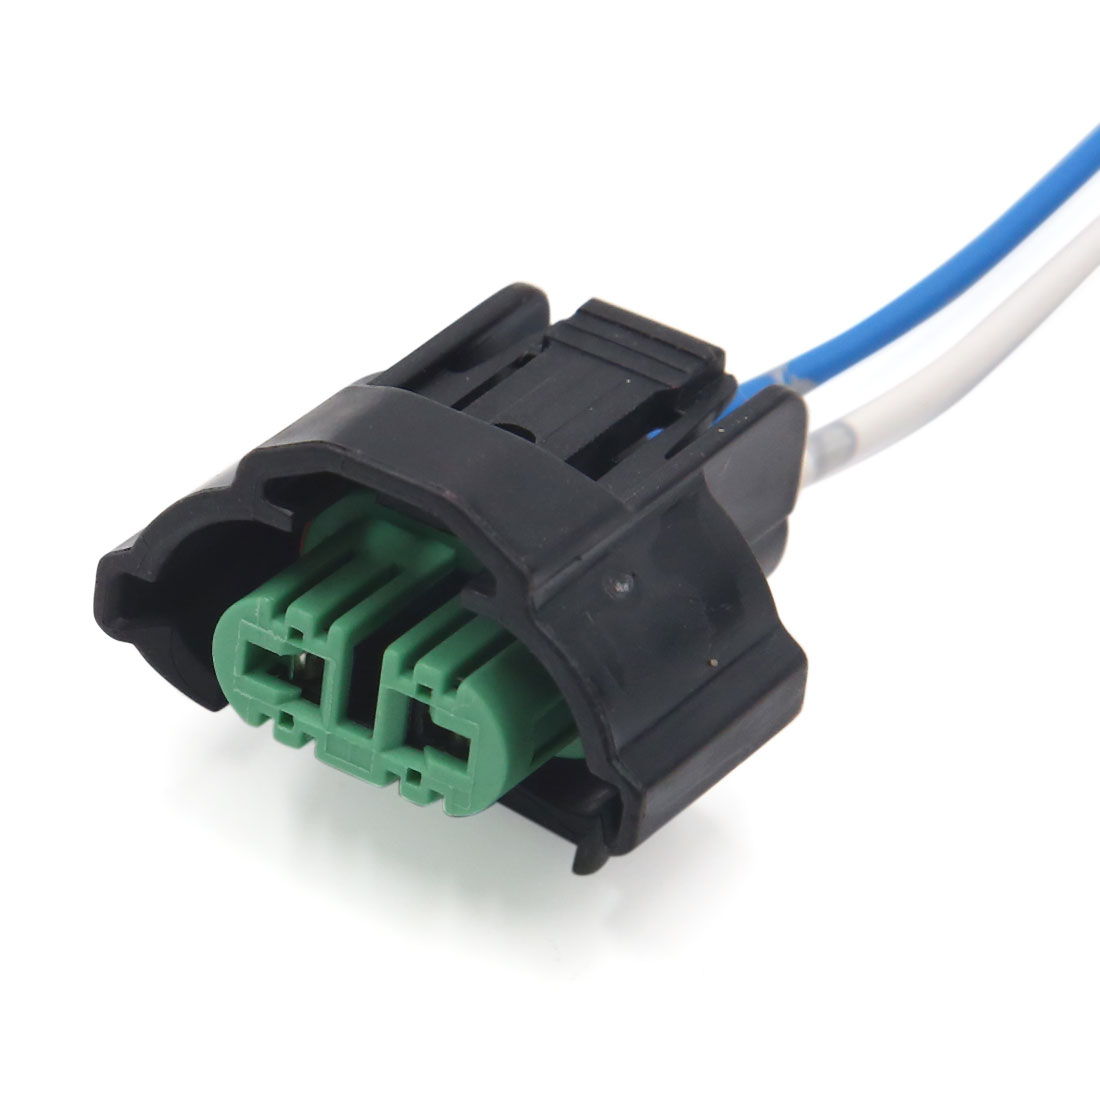 h11 bulb 2 wire car driving light headlamp wired harness socket connector [ 1100 x 1100 Pixel ]